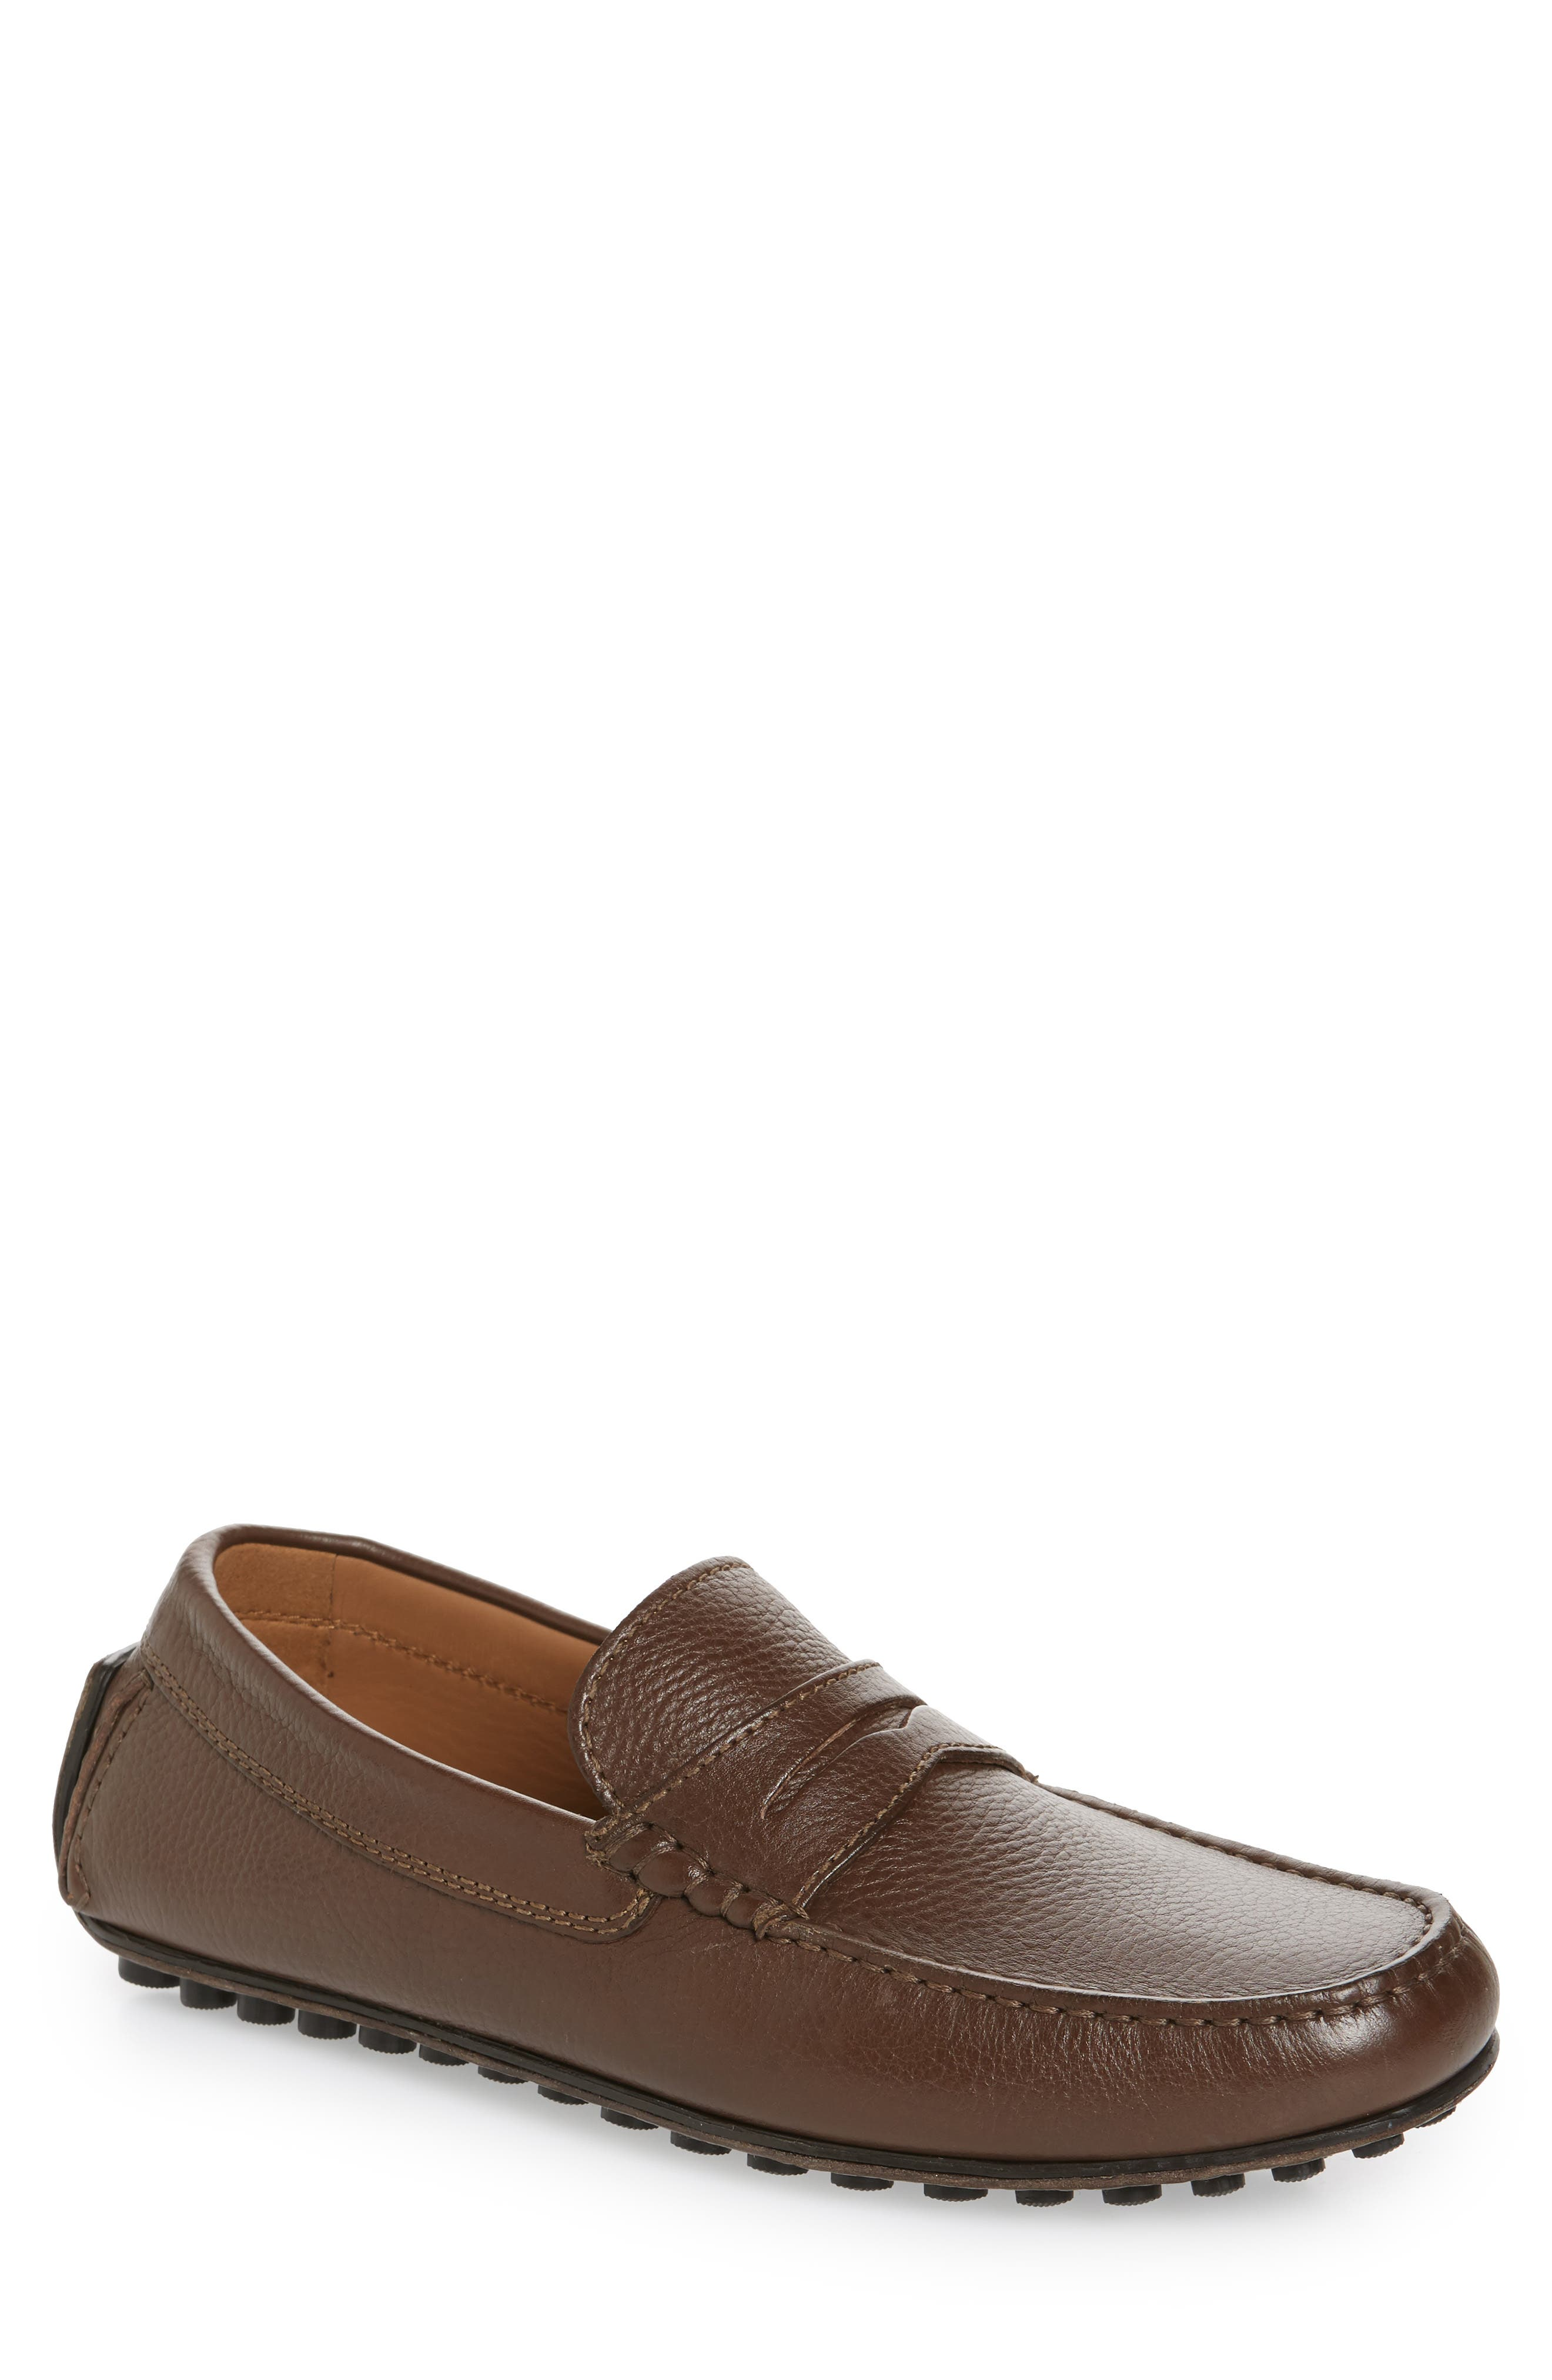 ROBERT TALBOTT Le Mans Penny Driving Moccasin in Brown